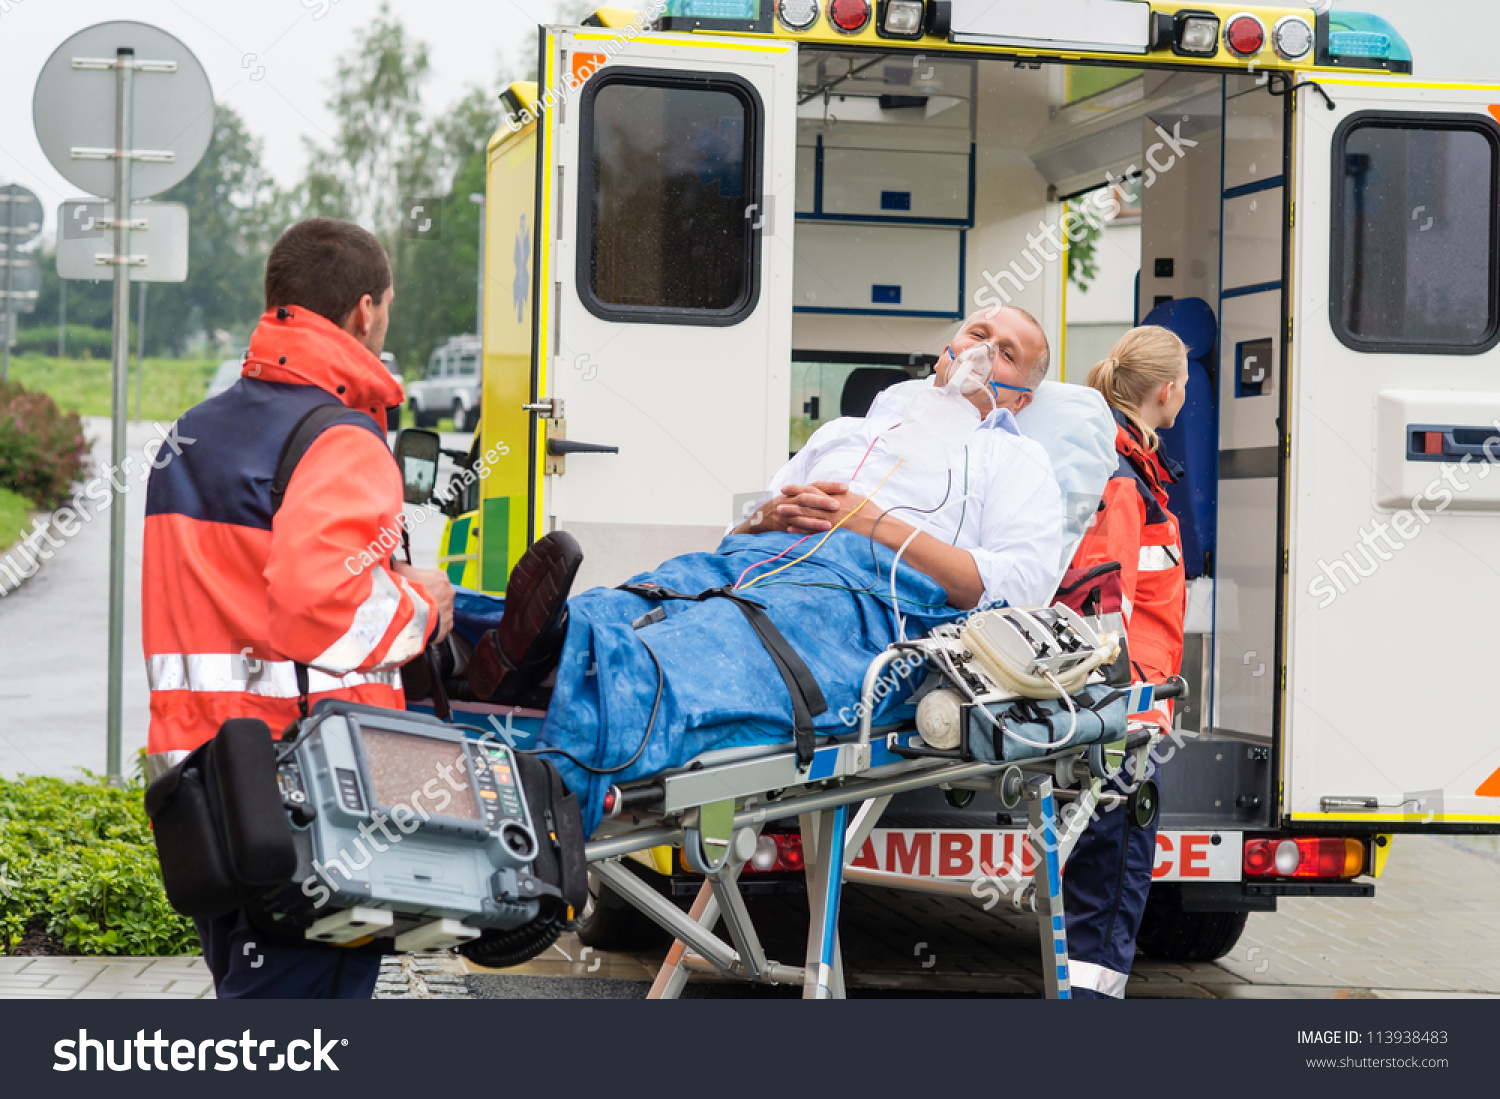 Oxygen Mask Male Patient Ambulance Stretcher Stock Photo ...